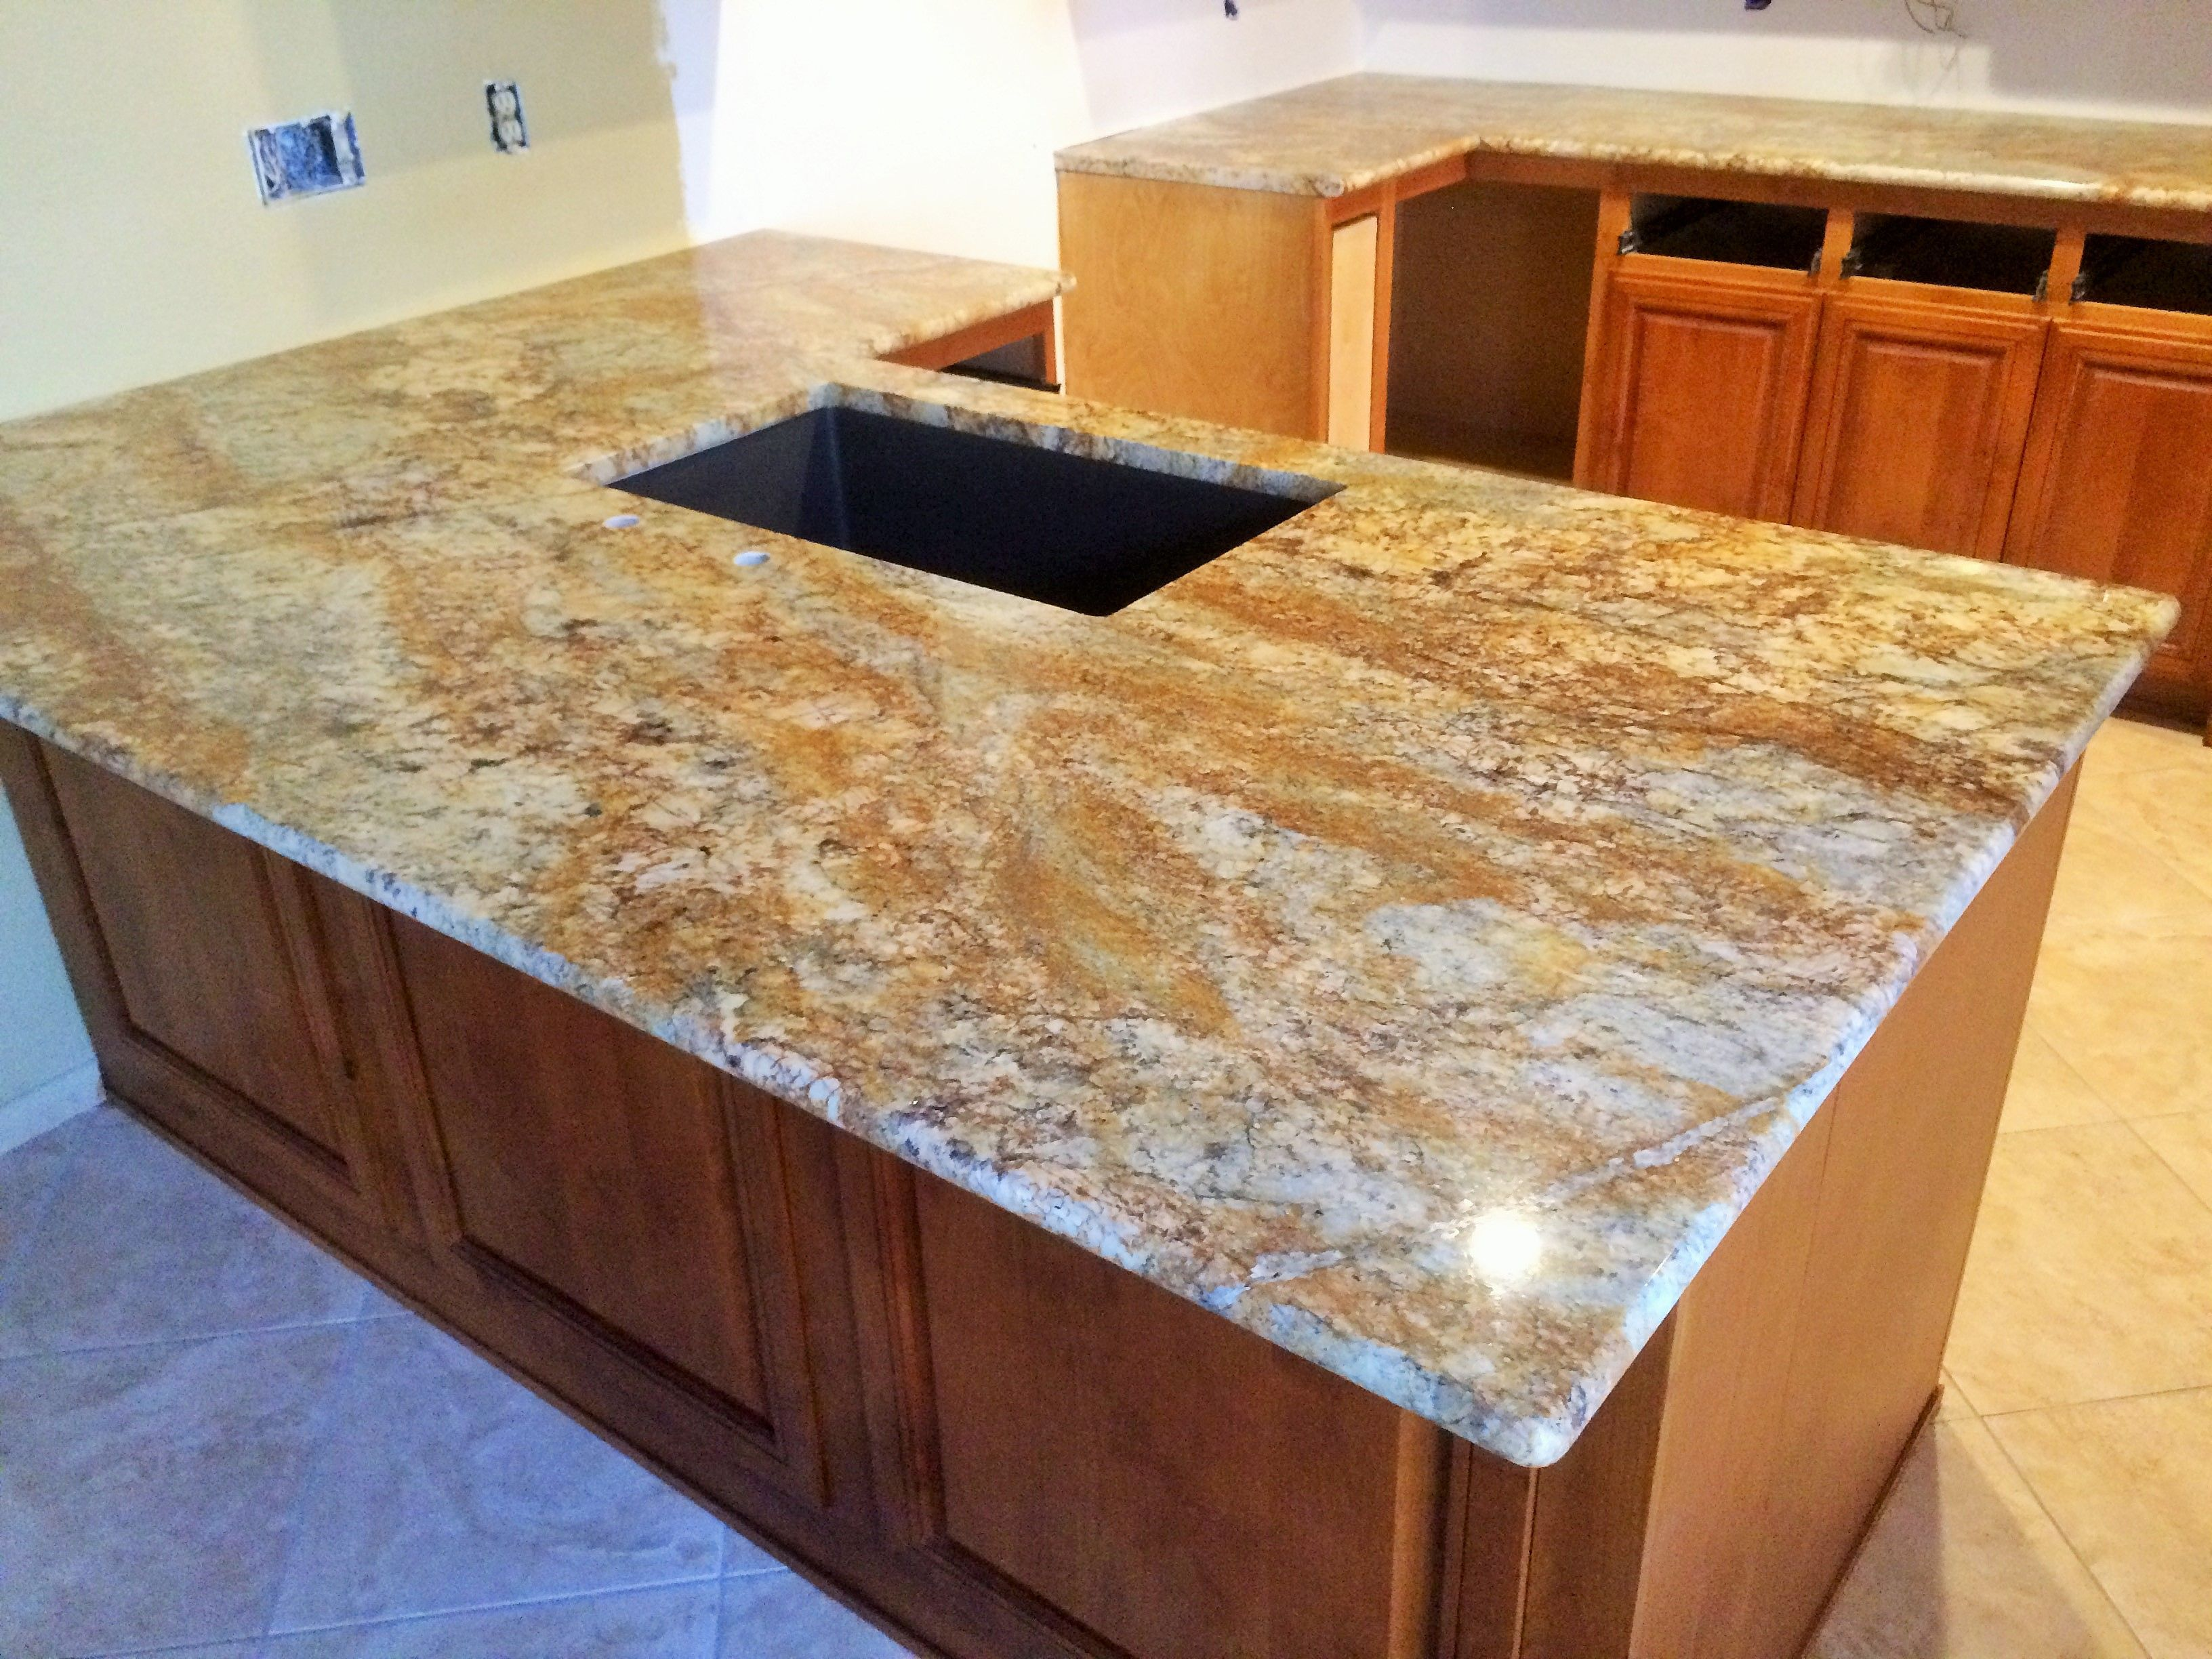 Colonial Gold Granite Kitchen Large Geriba Gold Island Kitchen Remodel Home Decor Kitchen